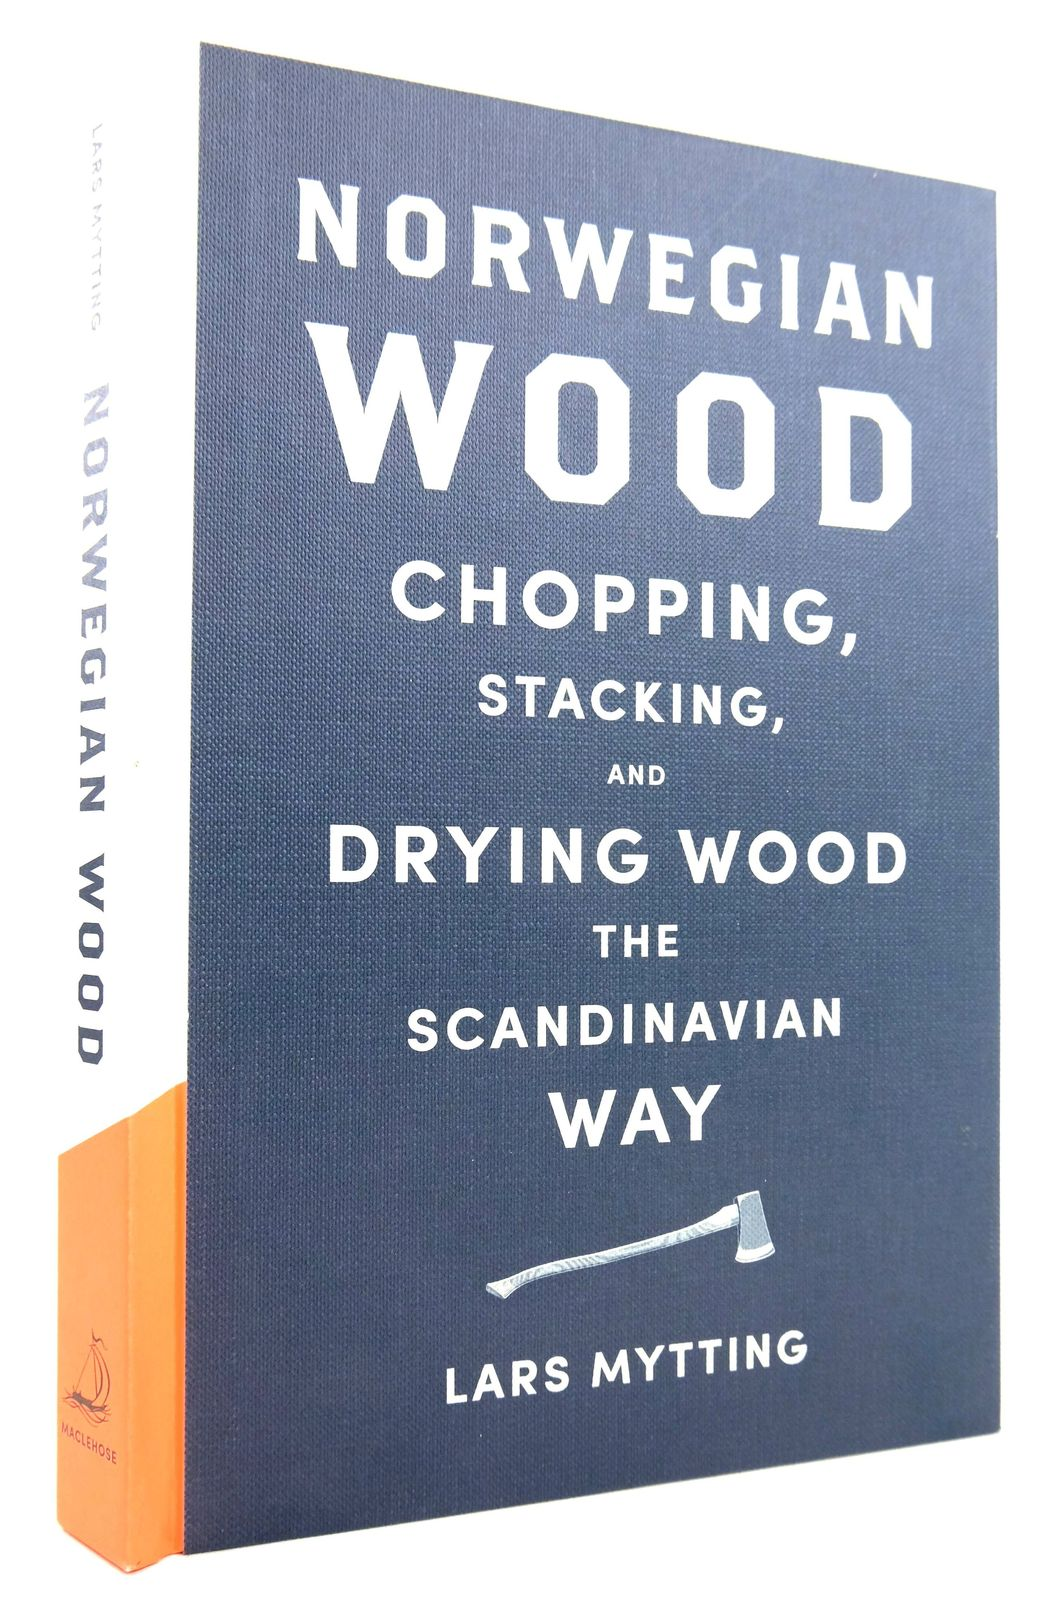 Photo of NORWEGIAN WOOD CHOPPING, STACKING, AND DRYING WOOD THE SCANDINAVIAN WAY written by Mytting, Lars published by Maclehose Press (STOCK CODE: 1819353)  for sale by Stella & Rose's Books